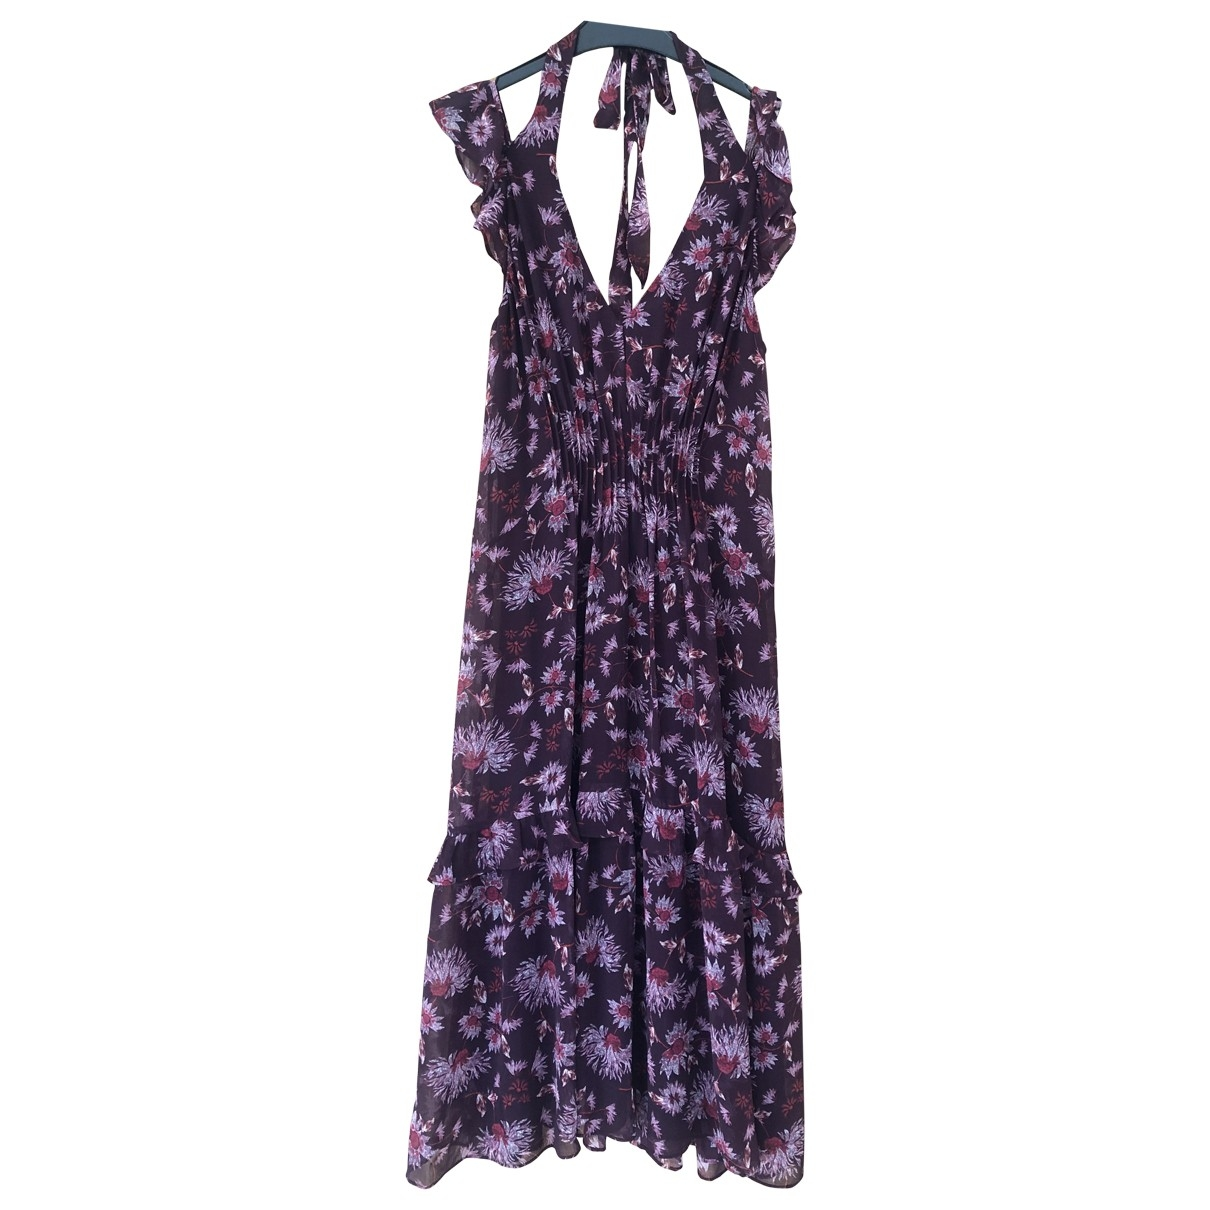 Whistles \N Purple dress for Women 10 UK